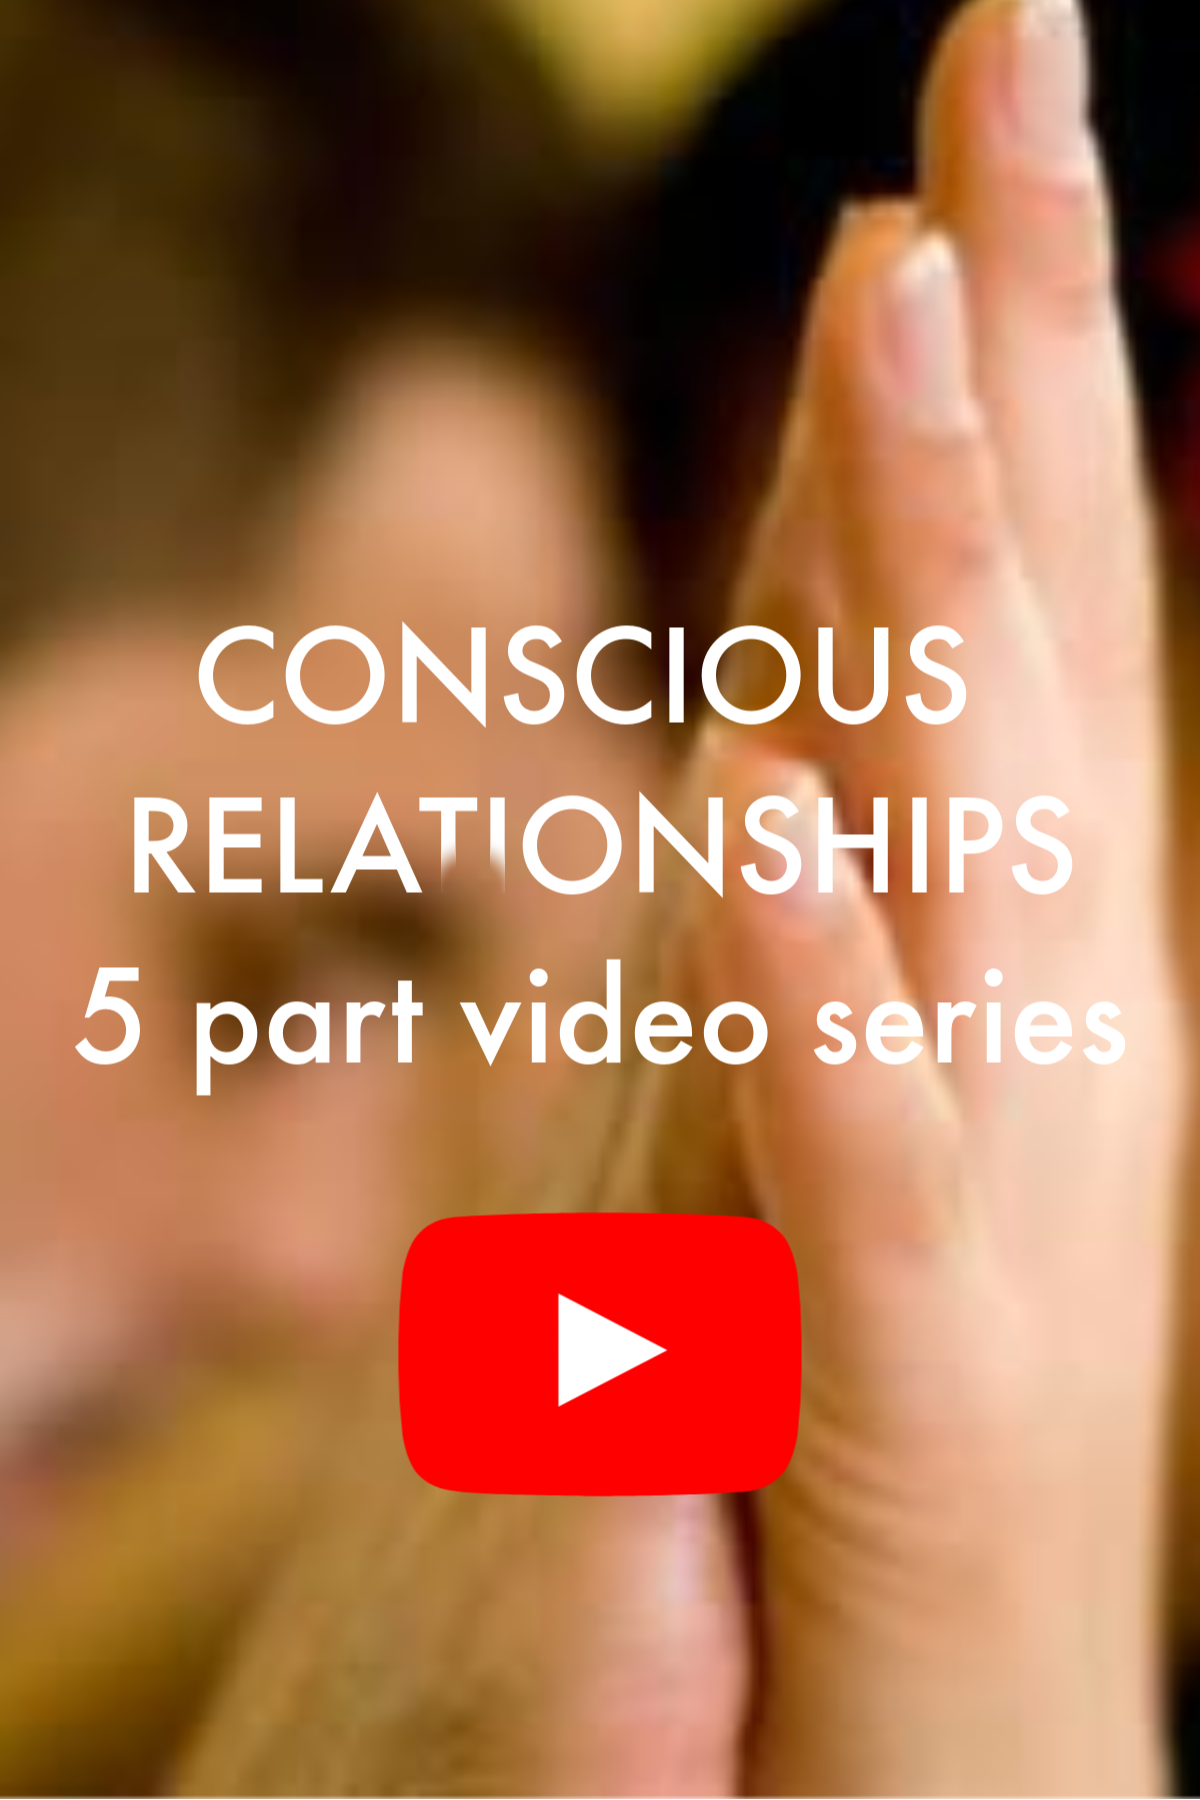 Conscious Relationships 5 part video ser